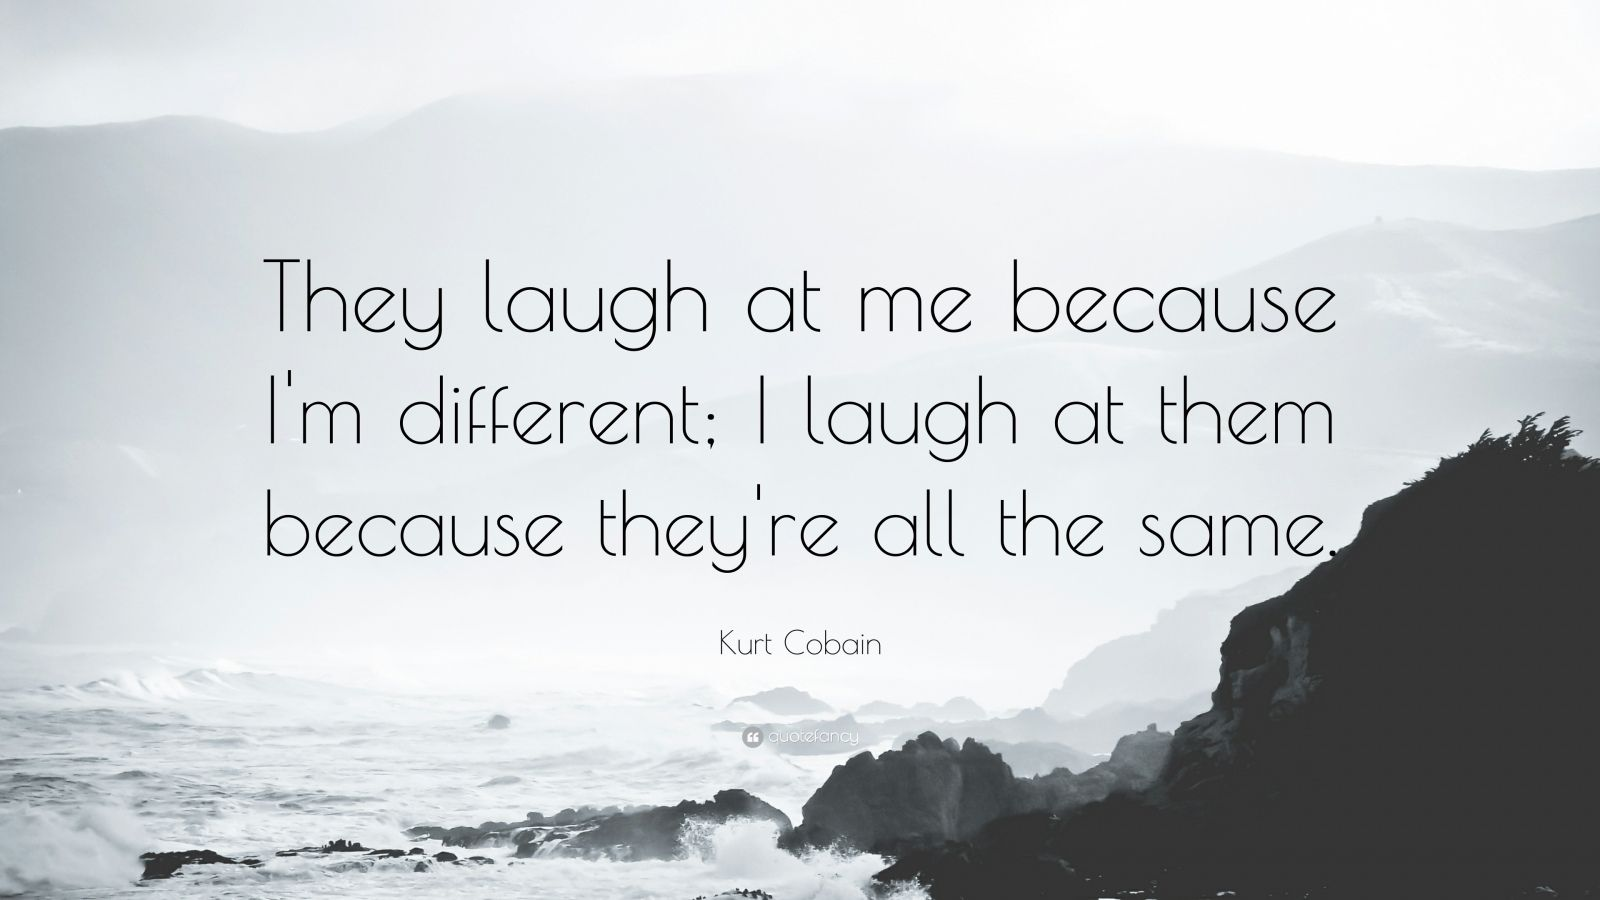 Theodore Roosevelt Wallpaper Quote Kurt Cobain Quote They Laugh At Me Because I M Different